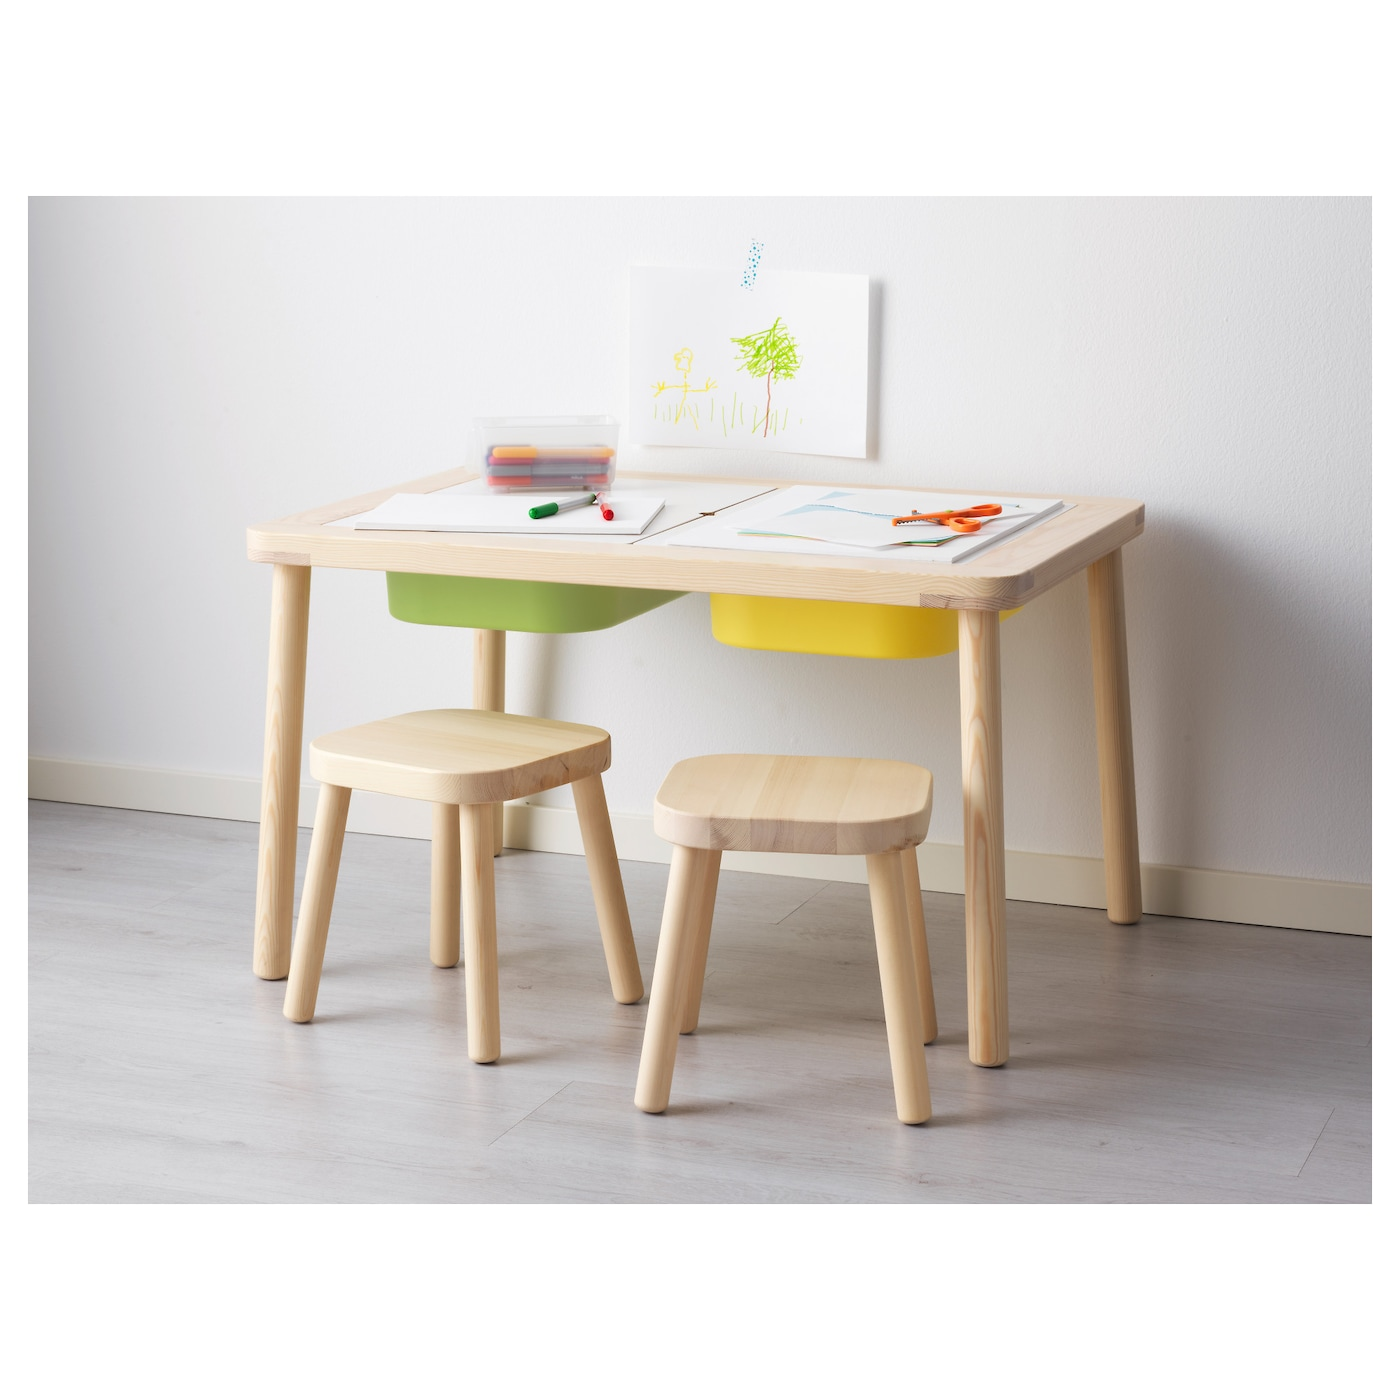 flisat children s table 83 x 58 cm ikea rh ikea com ikea childrens table and chairs ireland ikea childrens table and chairs kritter